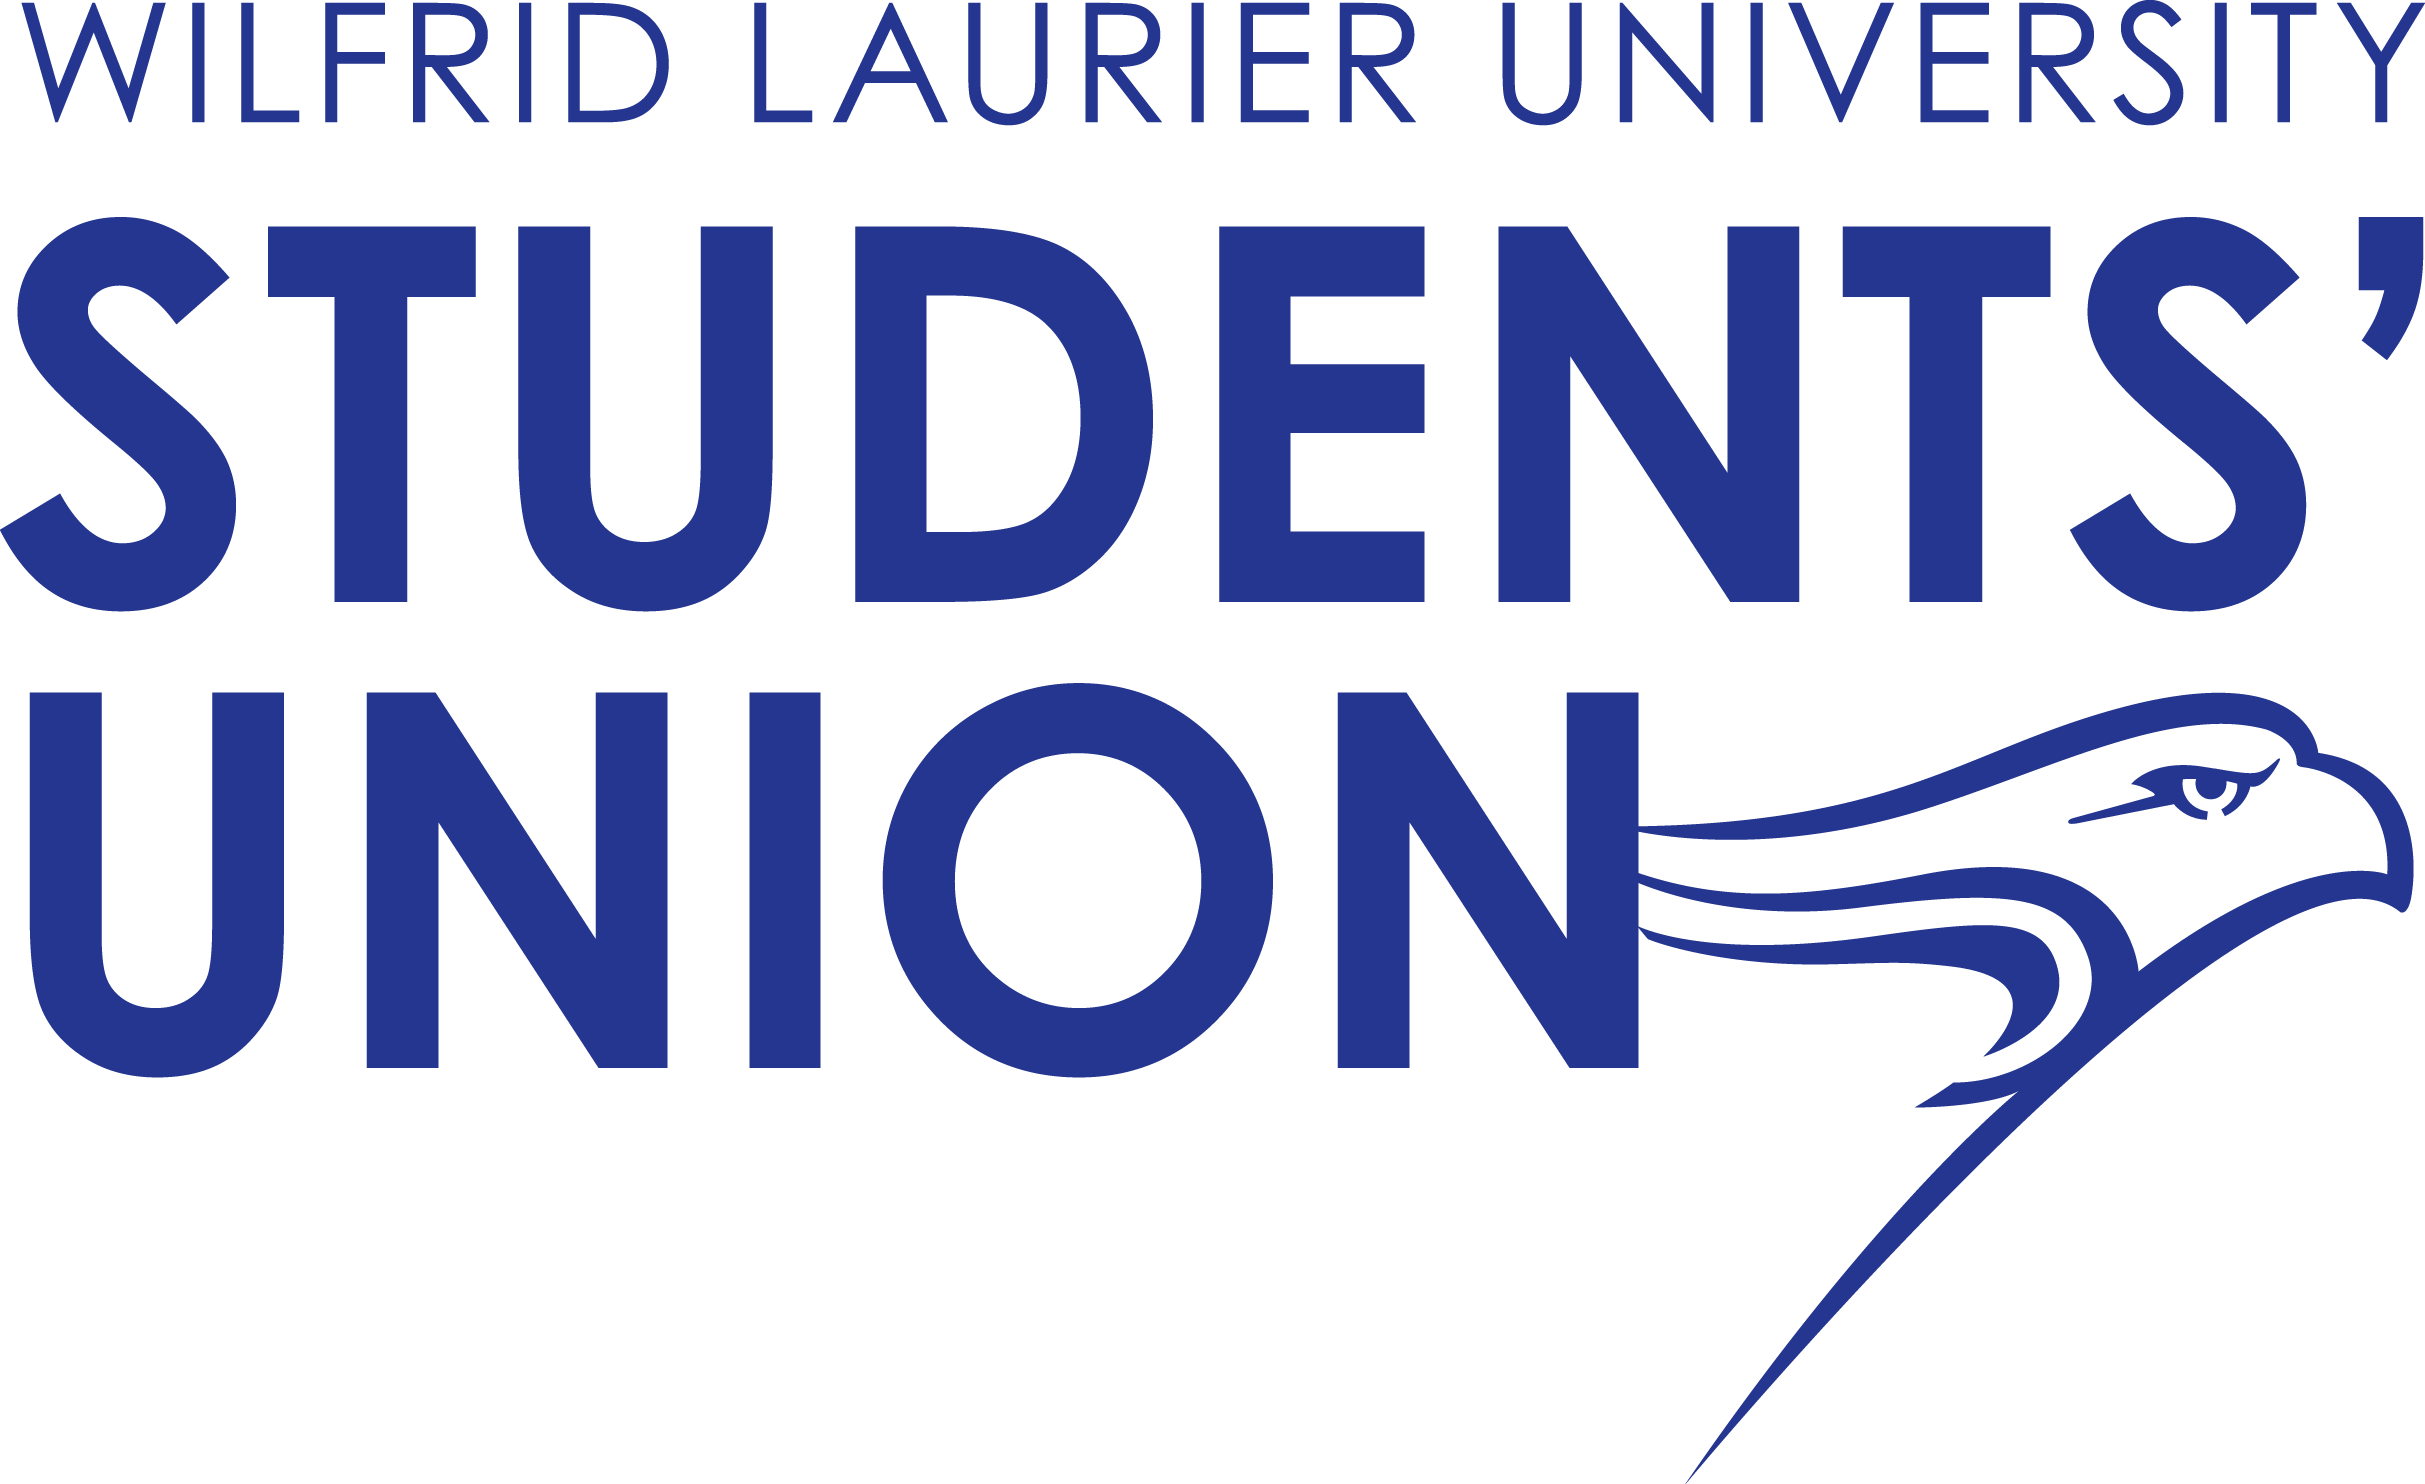 Students_Union_logo.png